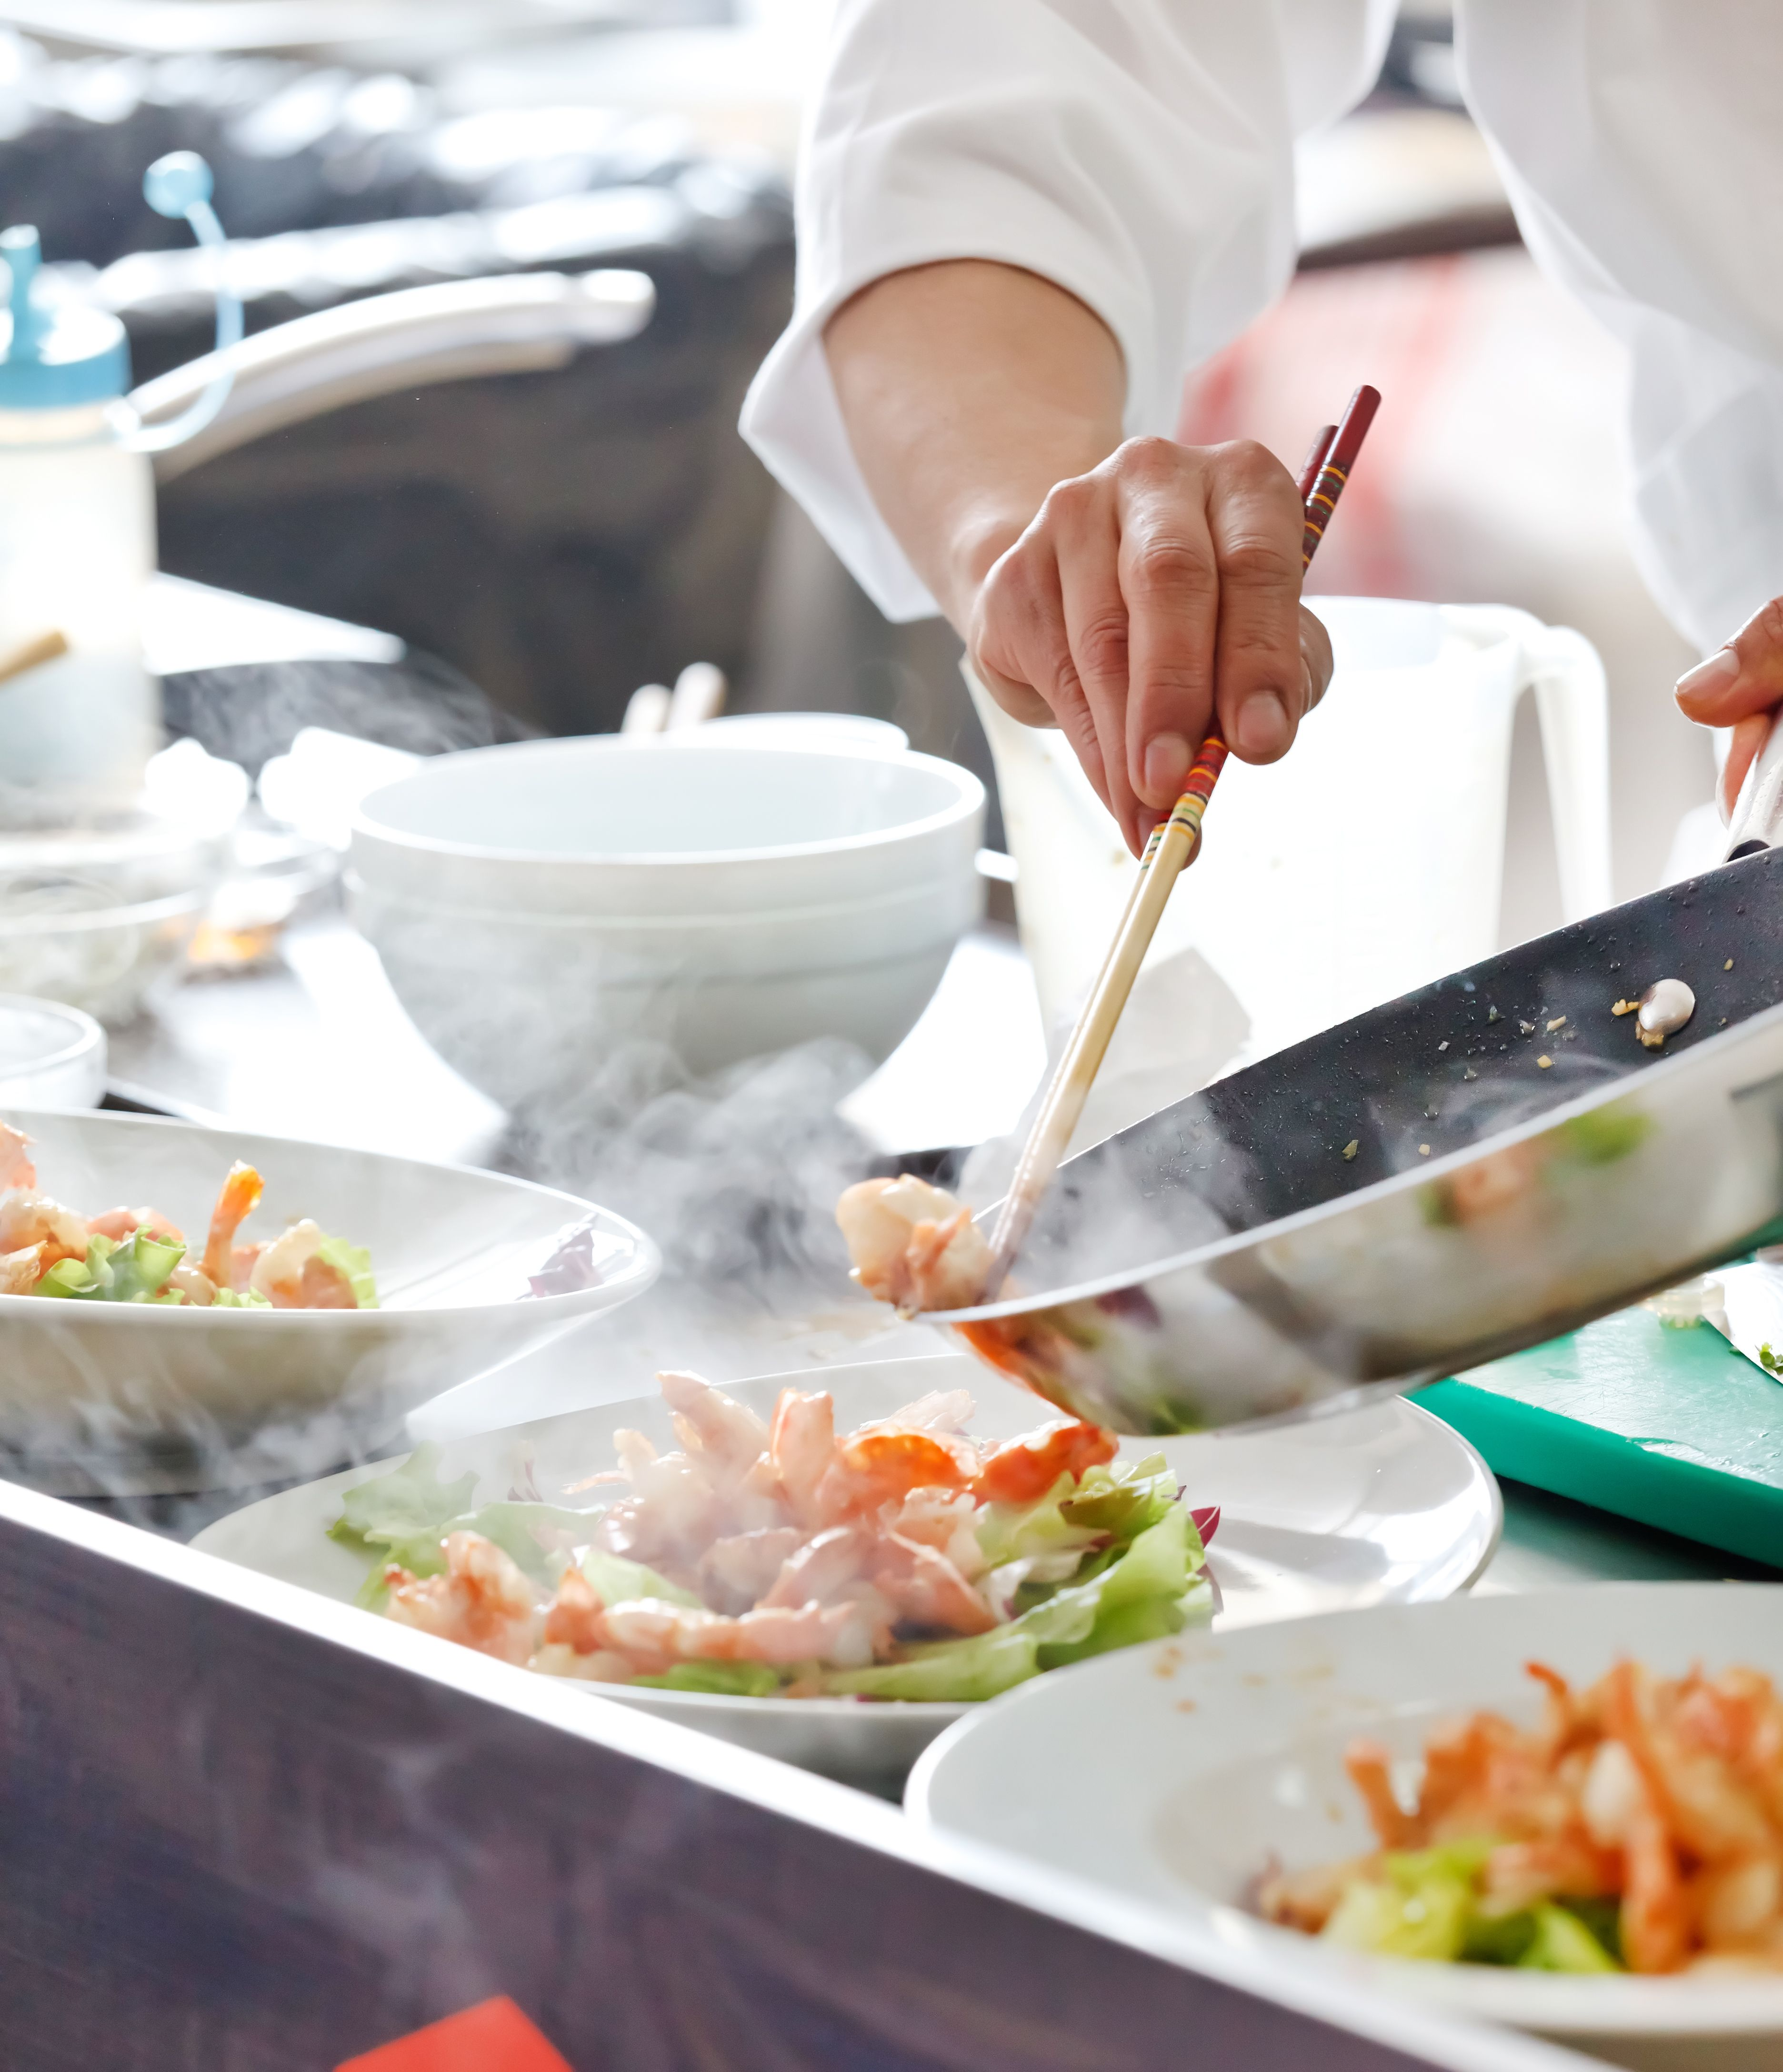 Managing the food in better ways